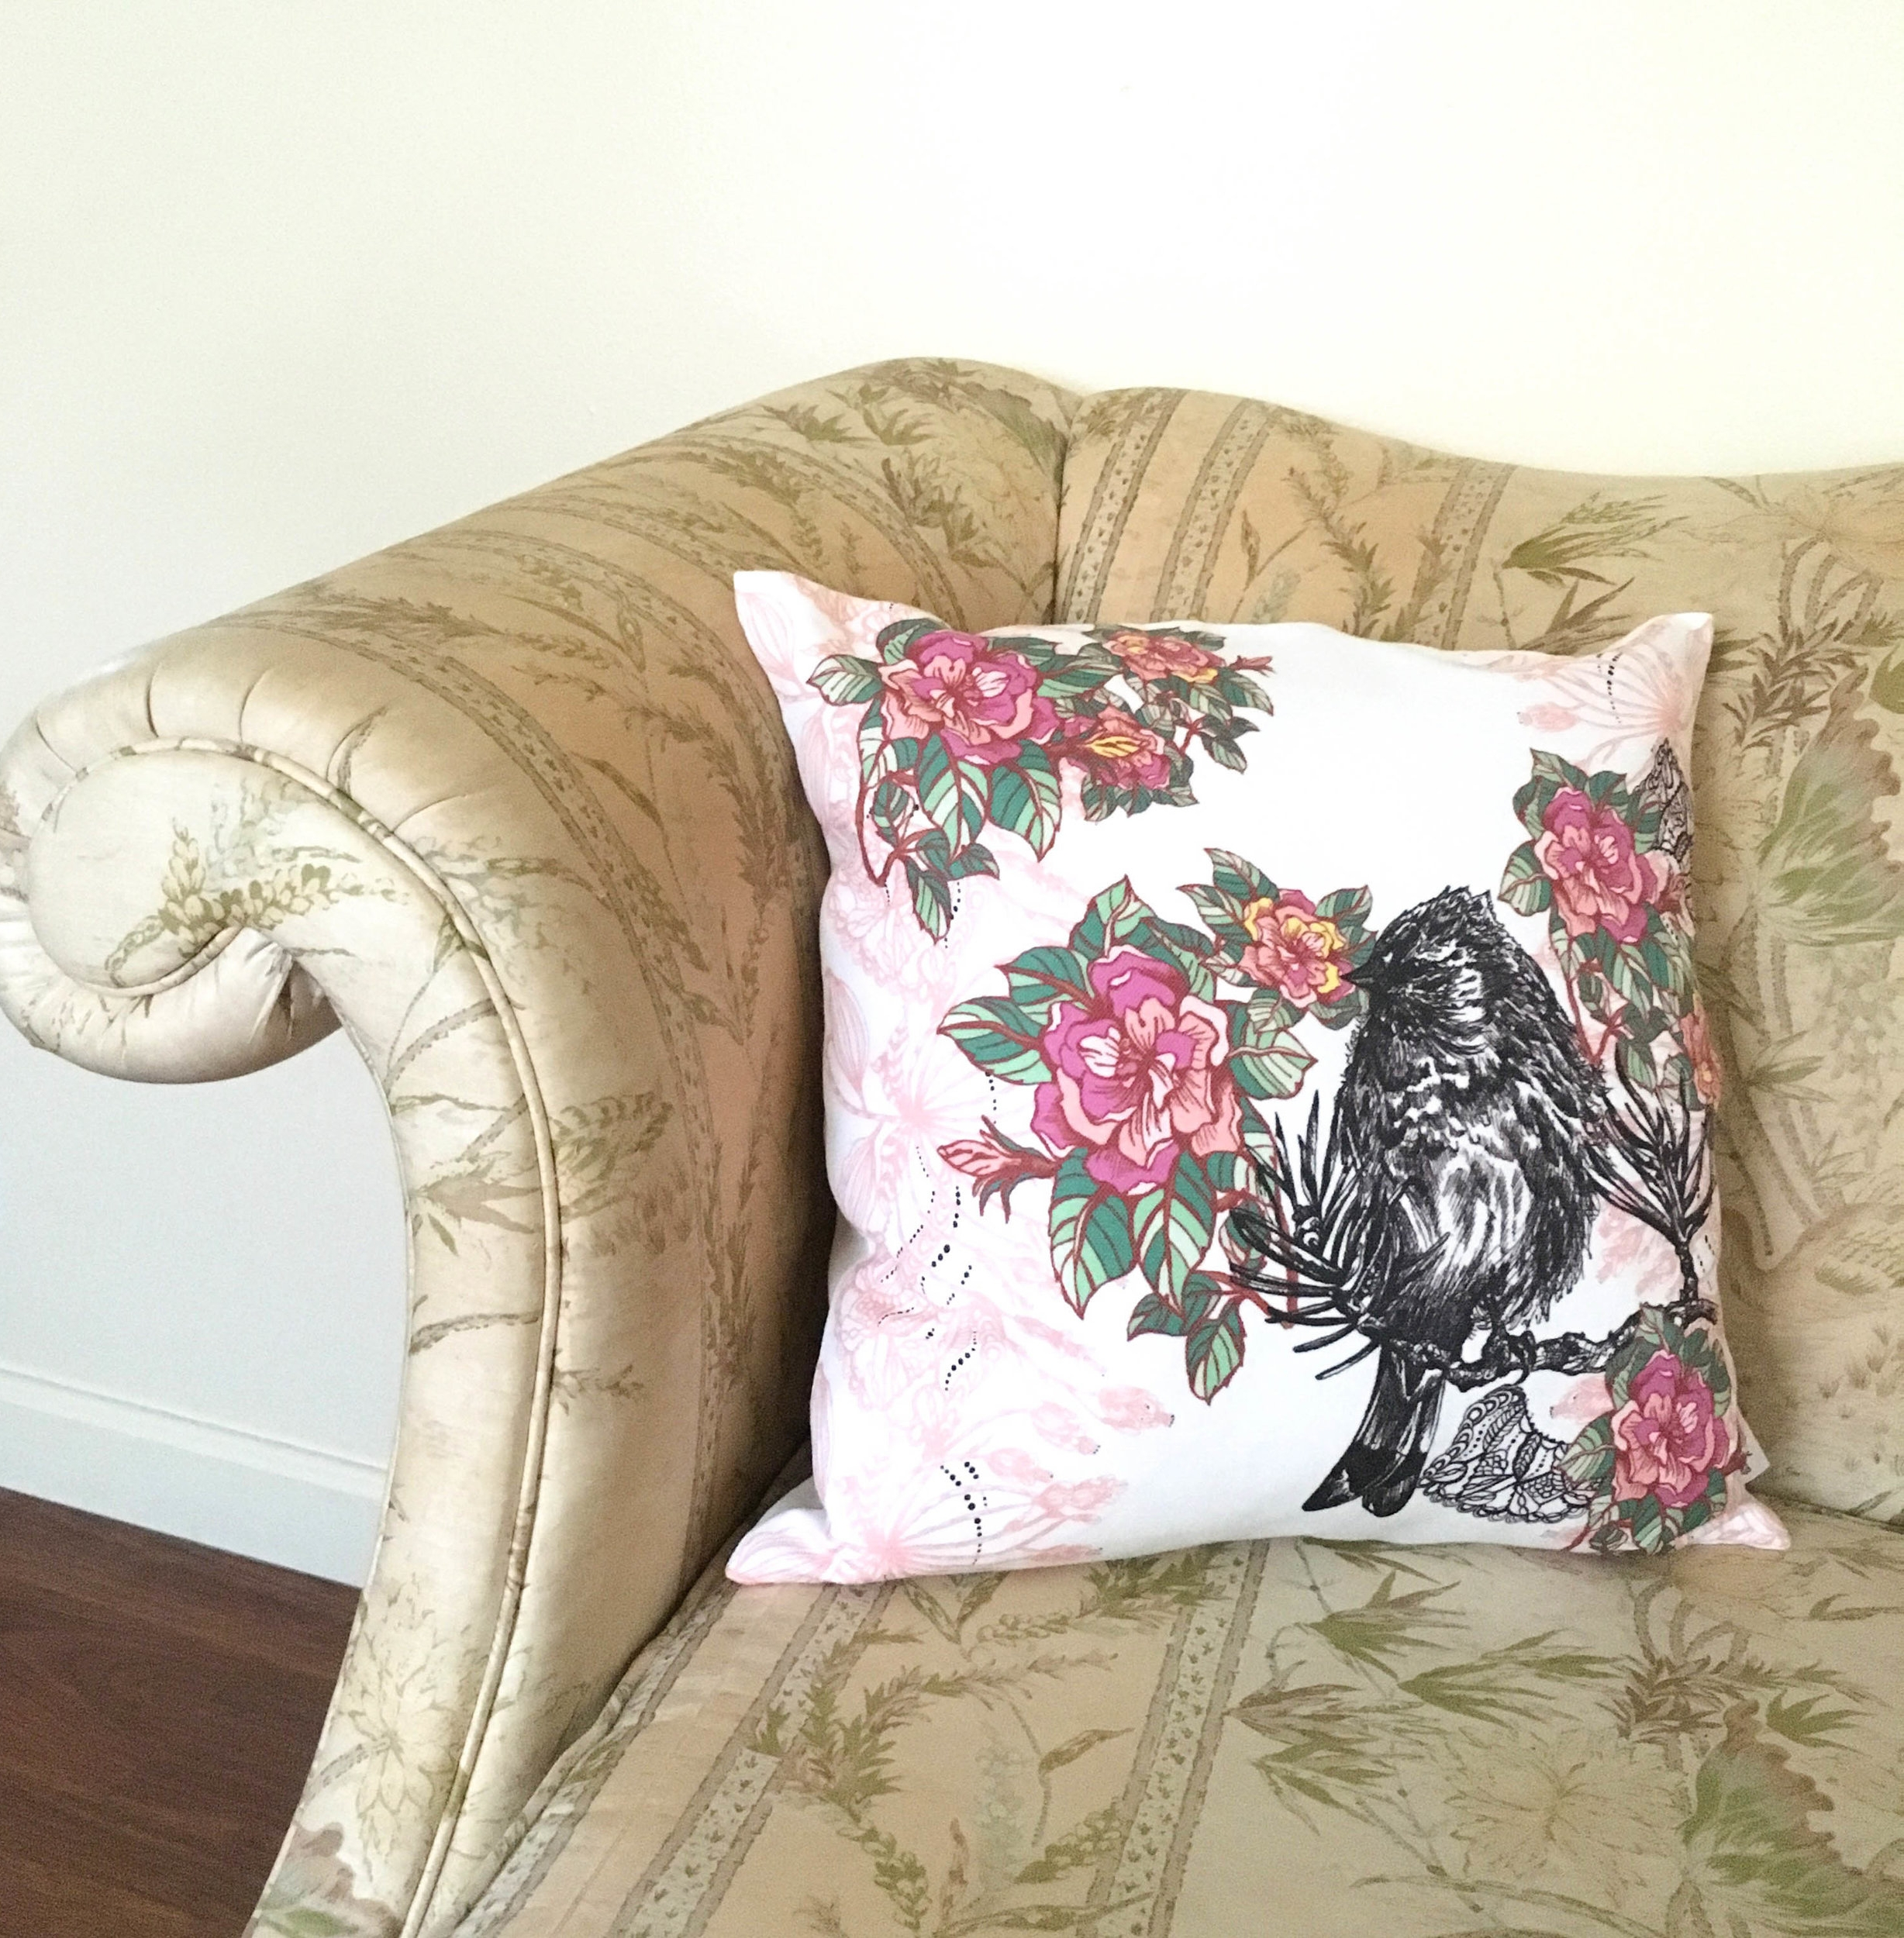 16x16 Acanthis Pillow with bright pink flowers and a bird on a branch displayed on sofa